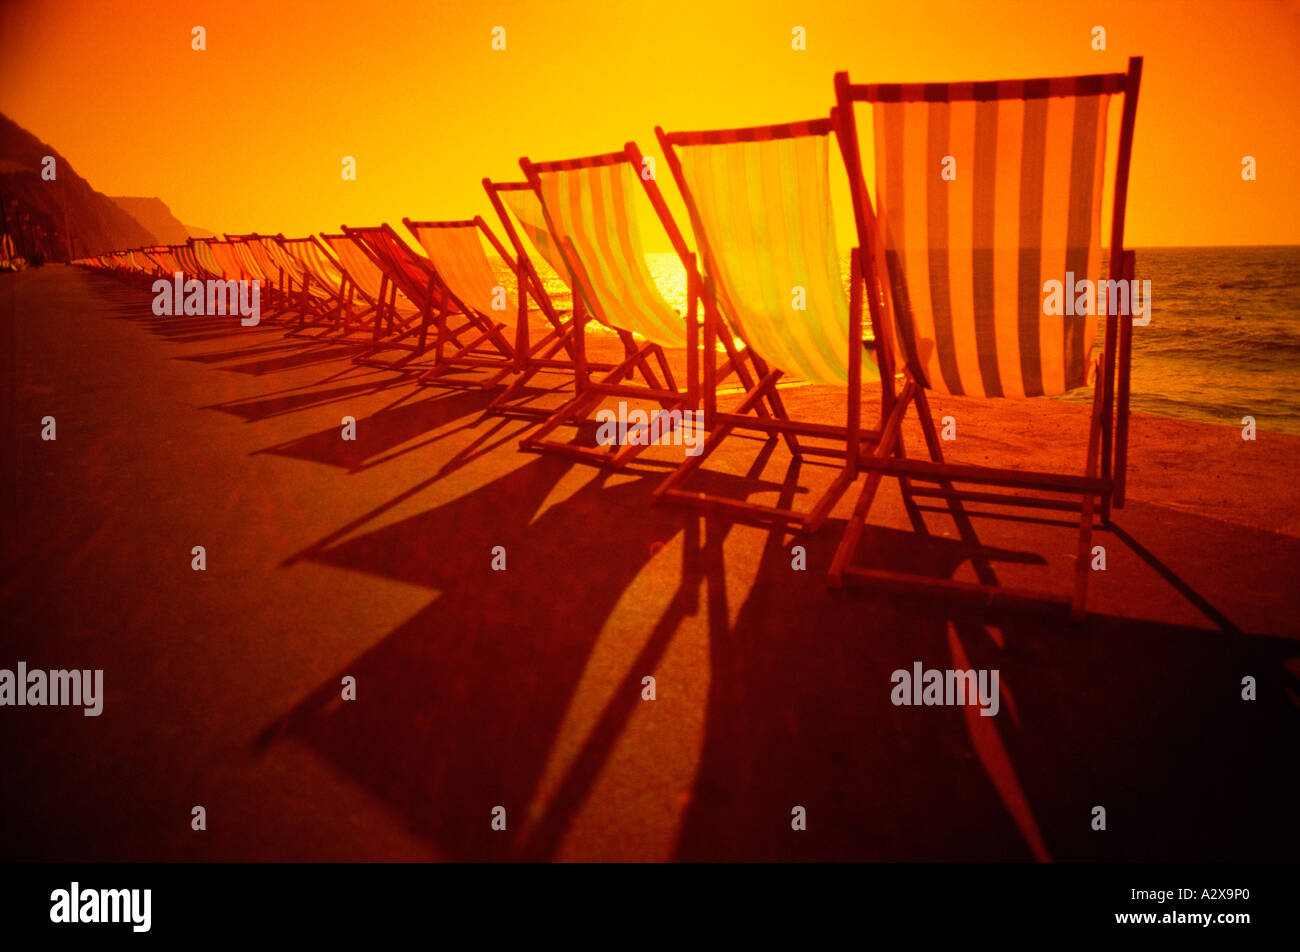 United Kingdom. England. Row of deckchairs on seafront promenade back lit at sunset. - Stock Image